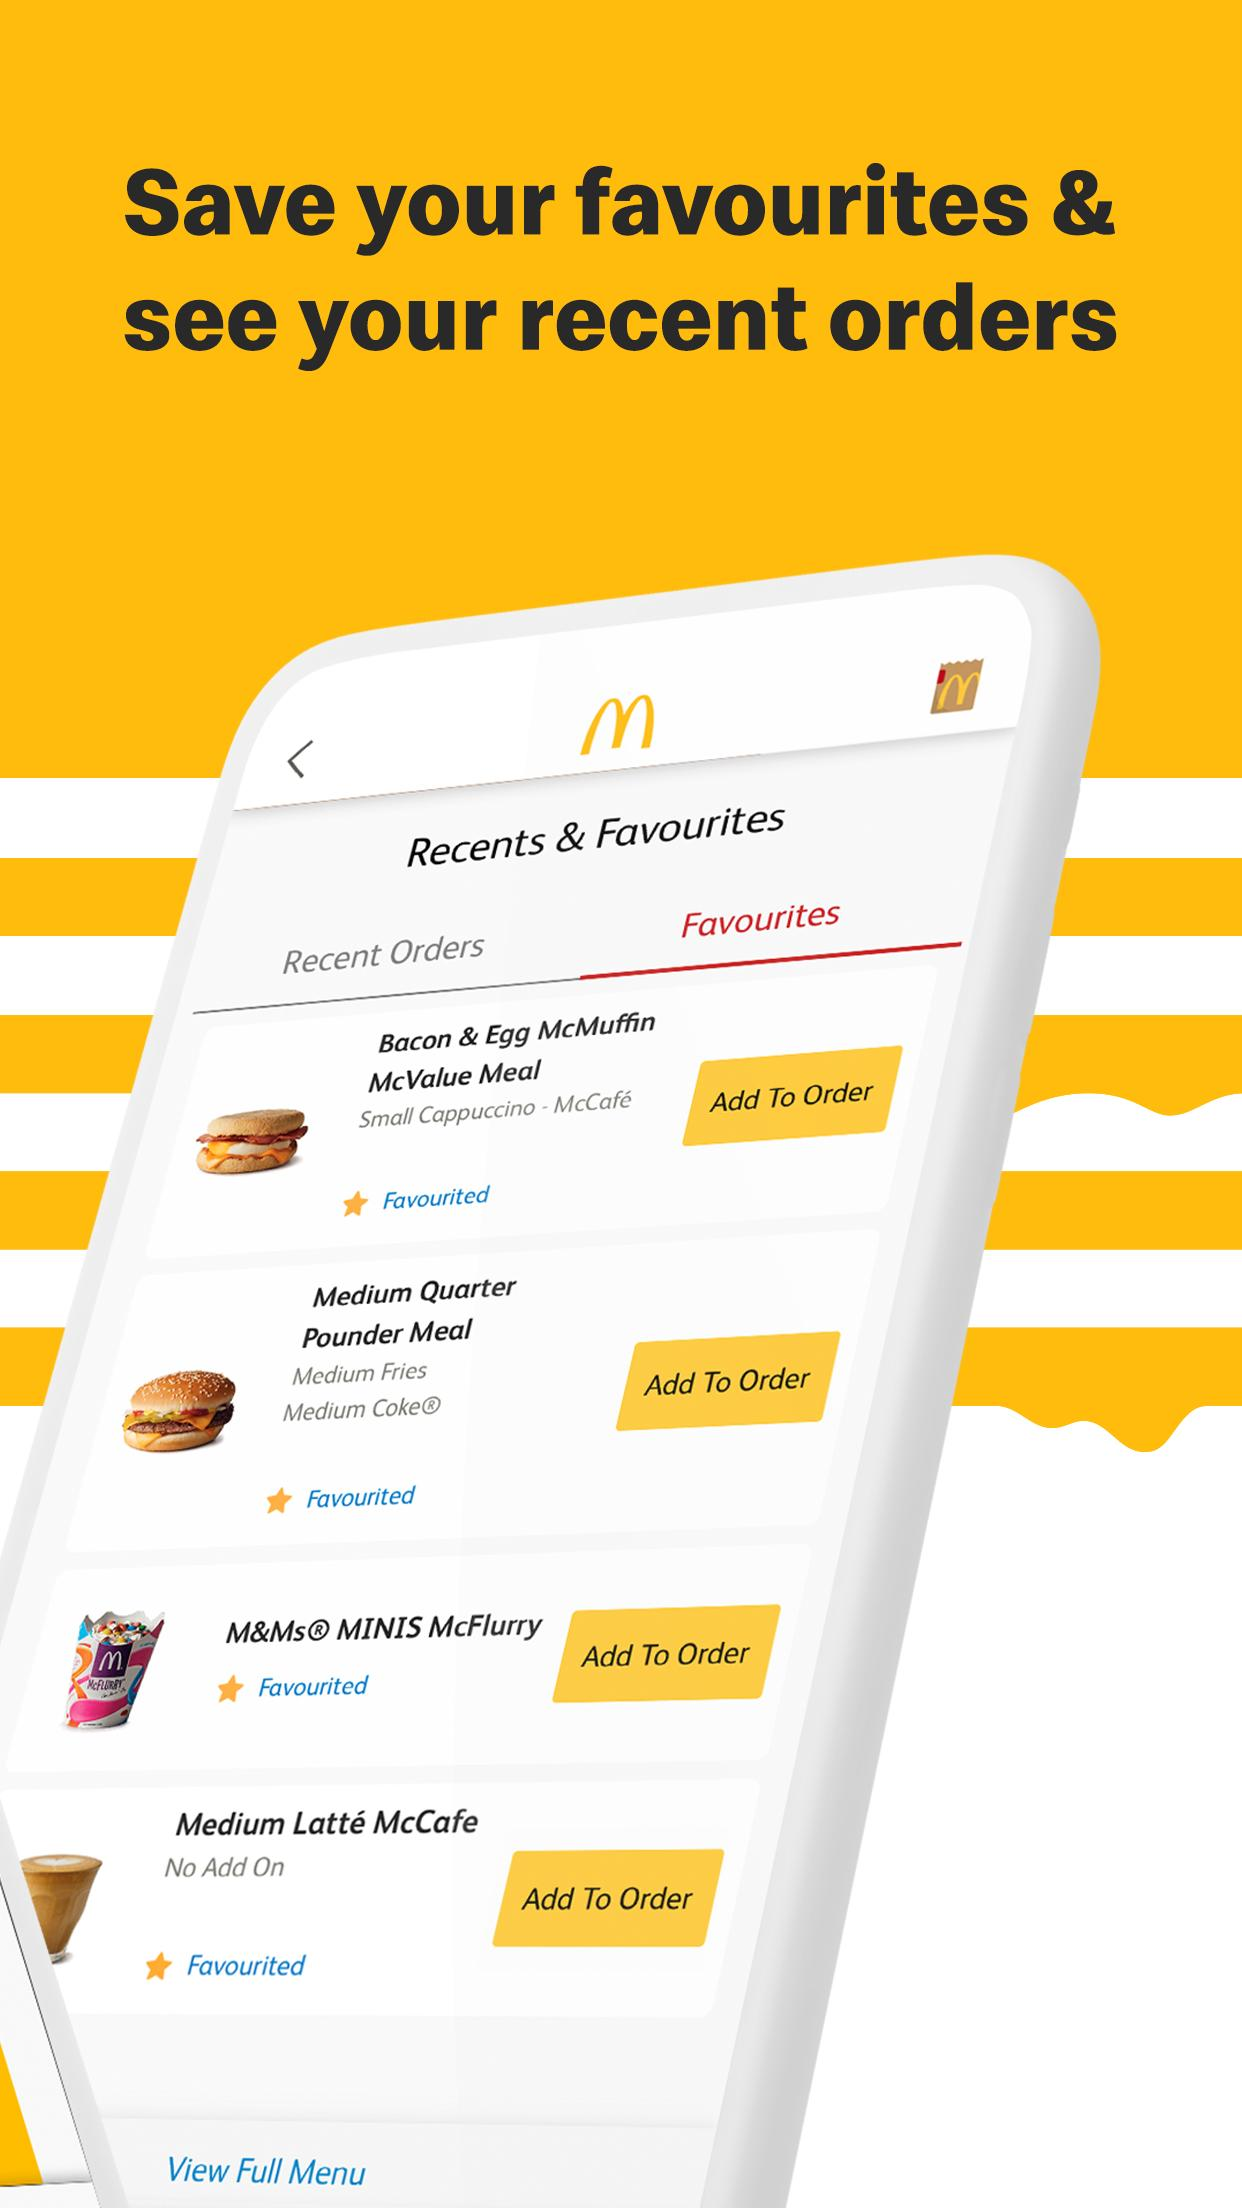 mymacca's Ordering & Offers 5.7.3 Screenshot 2